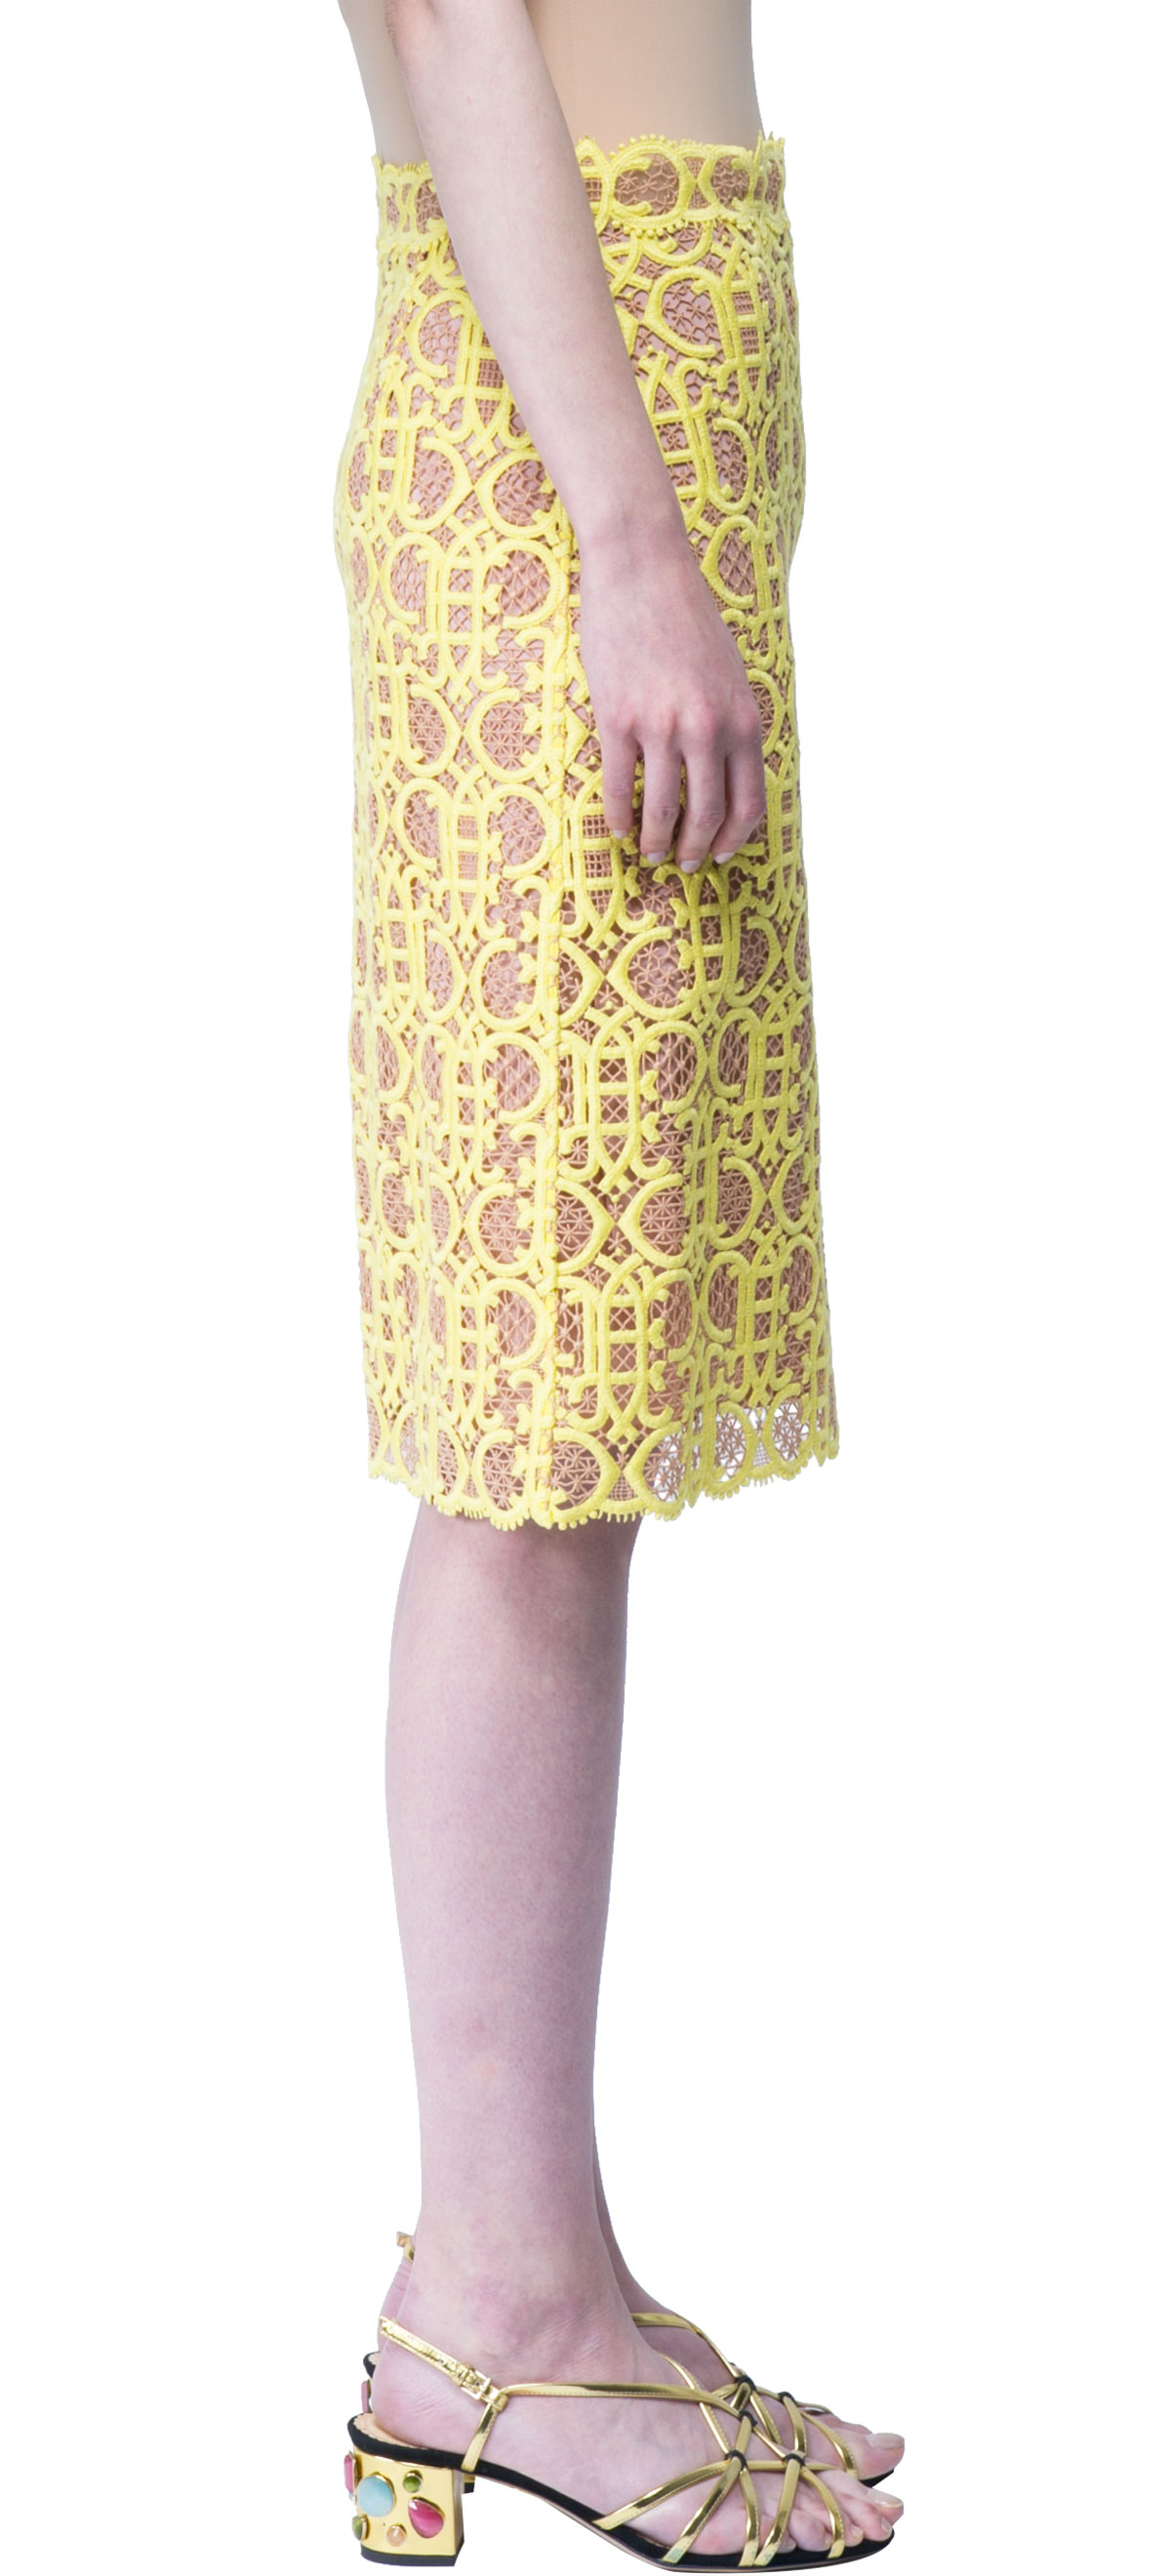 emilio pucci macrame lace pencil skirt in yellow lyst